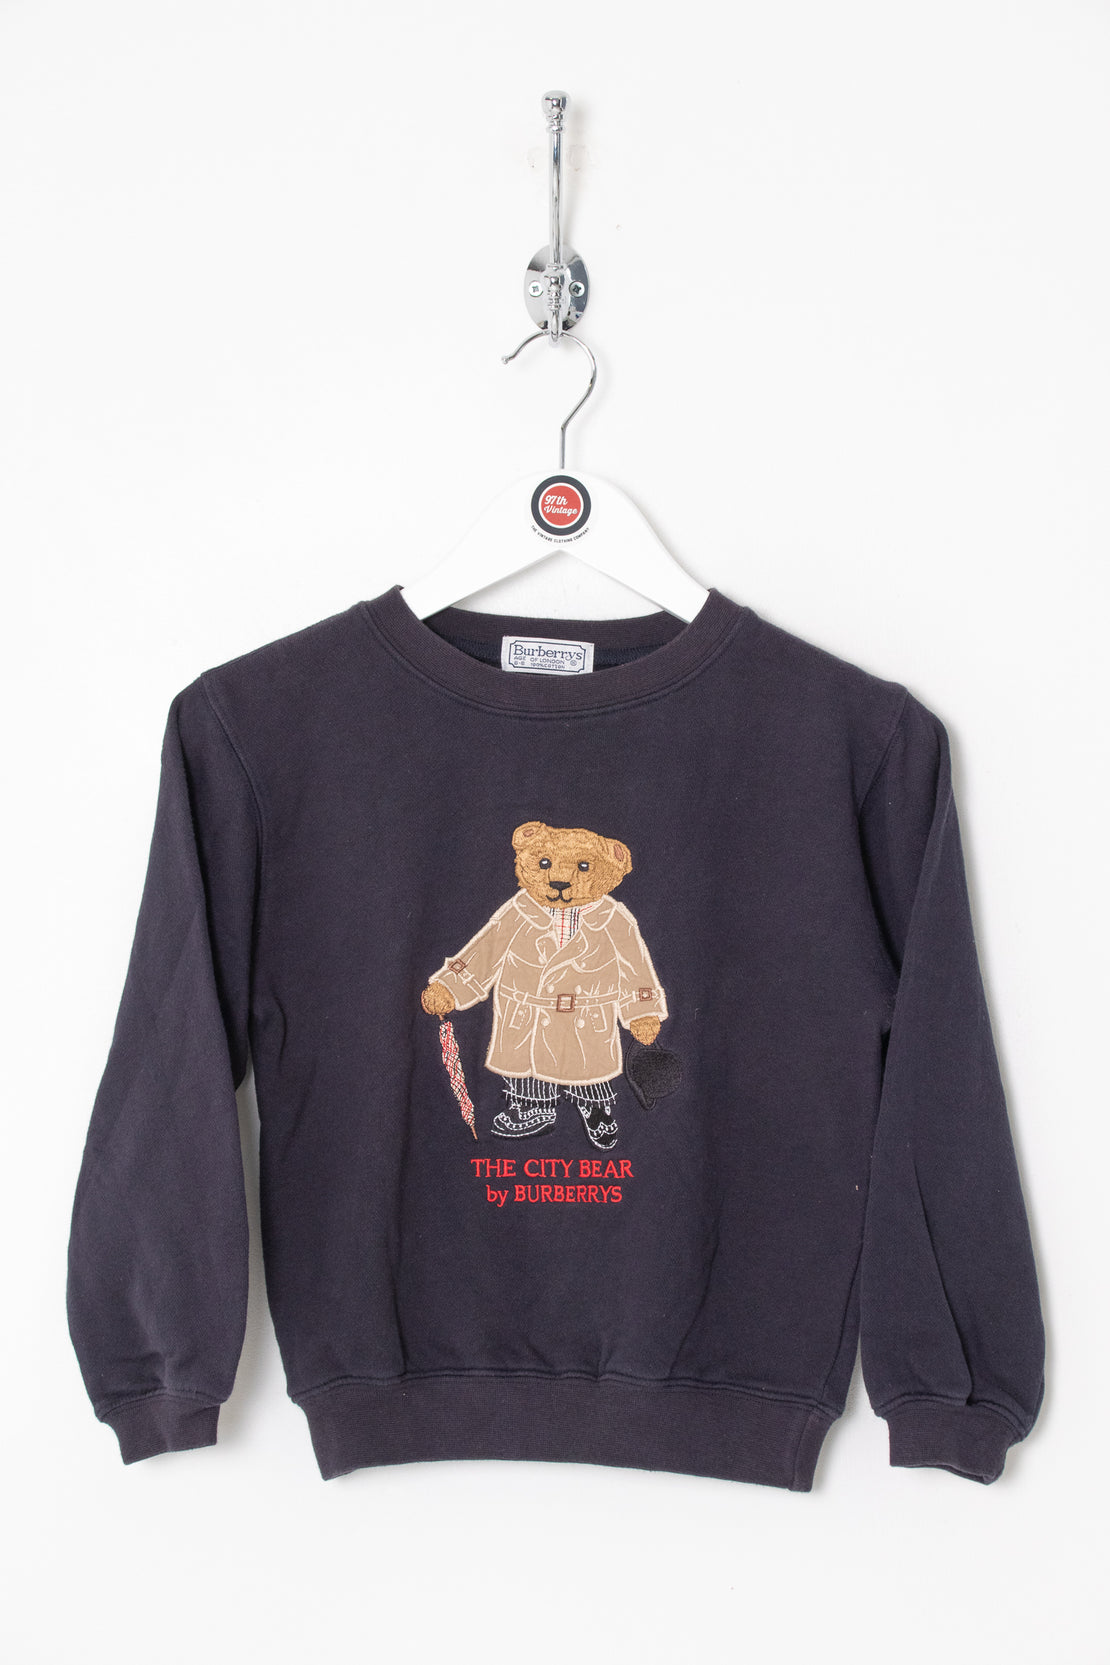 Kids Burberry Sweatshirt (Age 6-8)